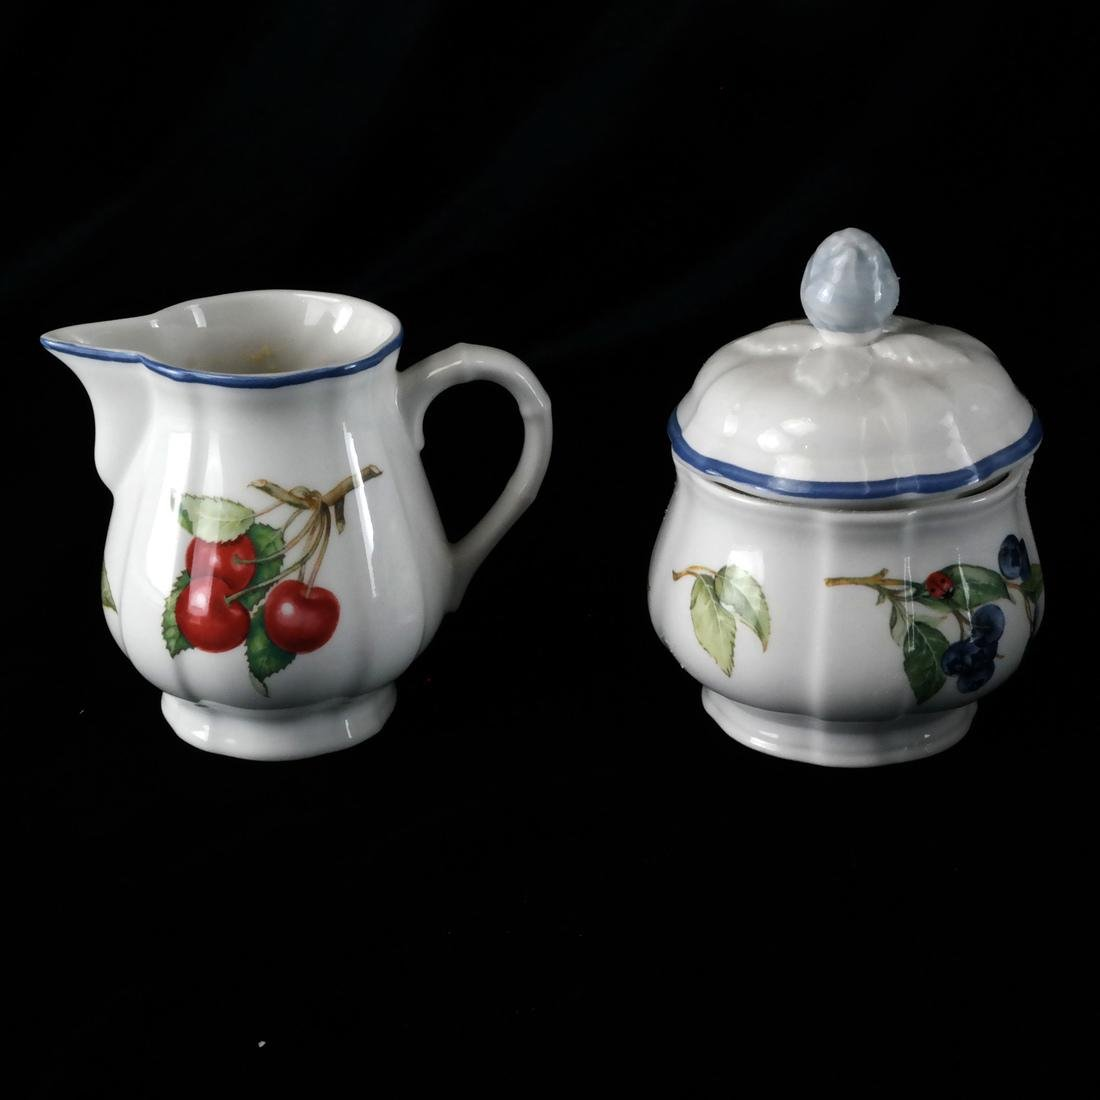 Villery and Boch, Germany: Partial Dinnerware - 4